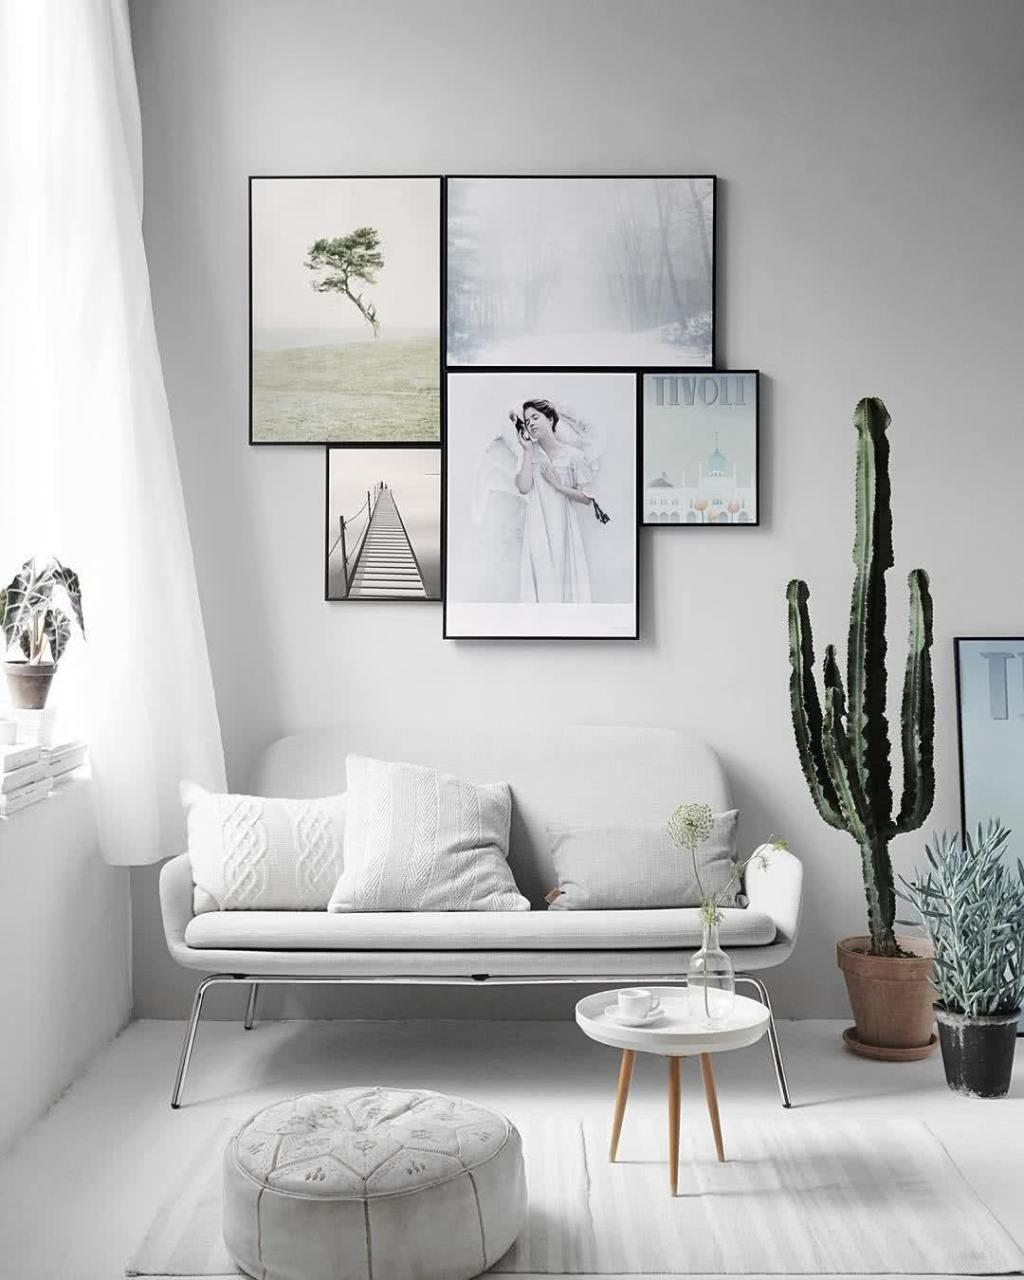 Cacti at home: 60 inspirations to decorate with plant 7